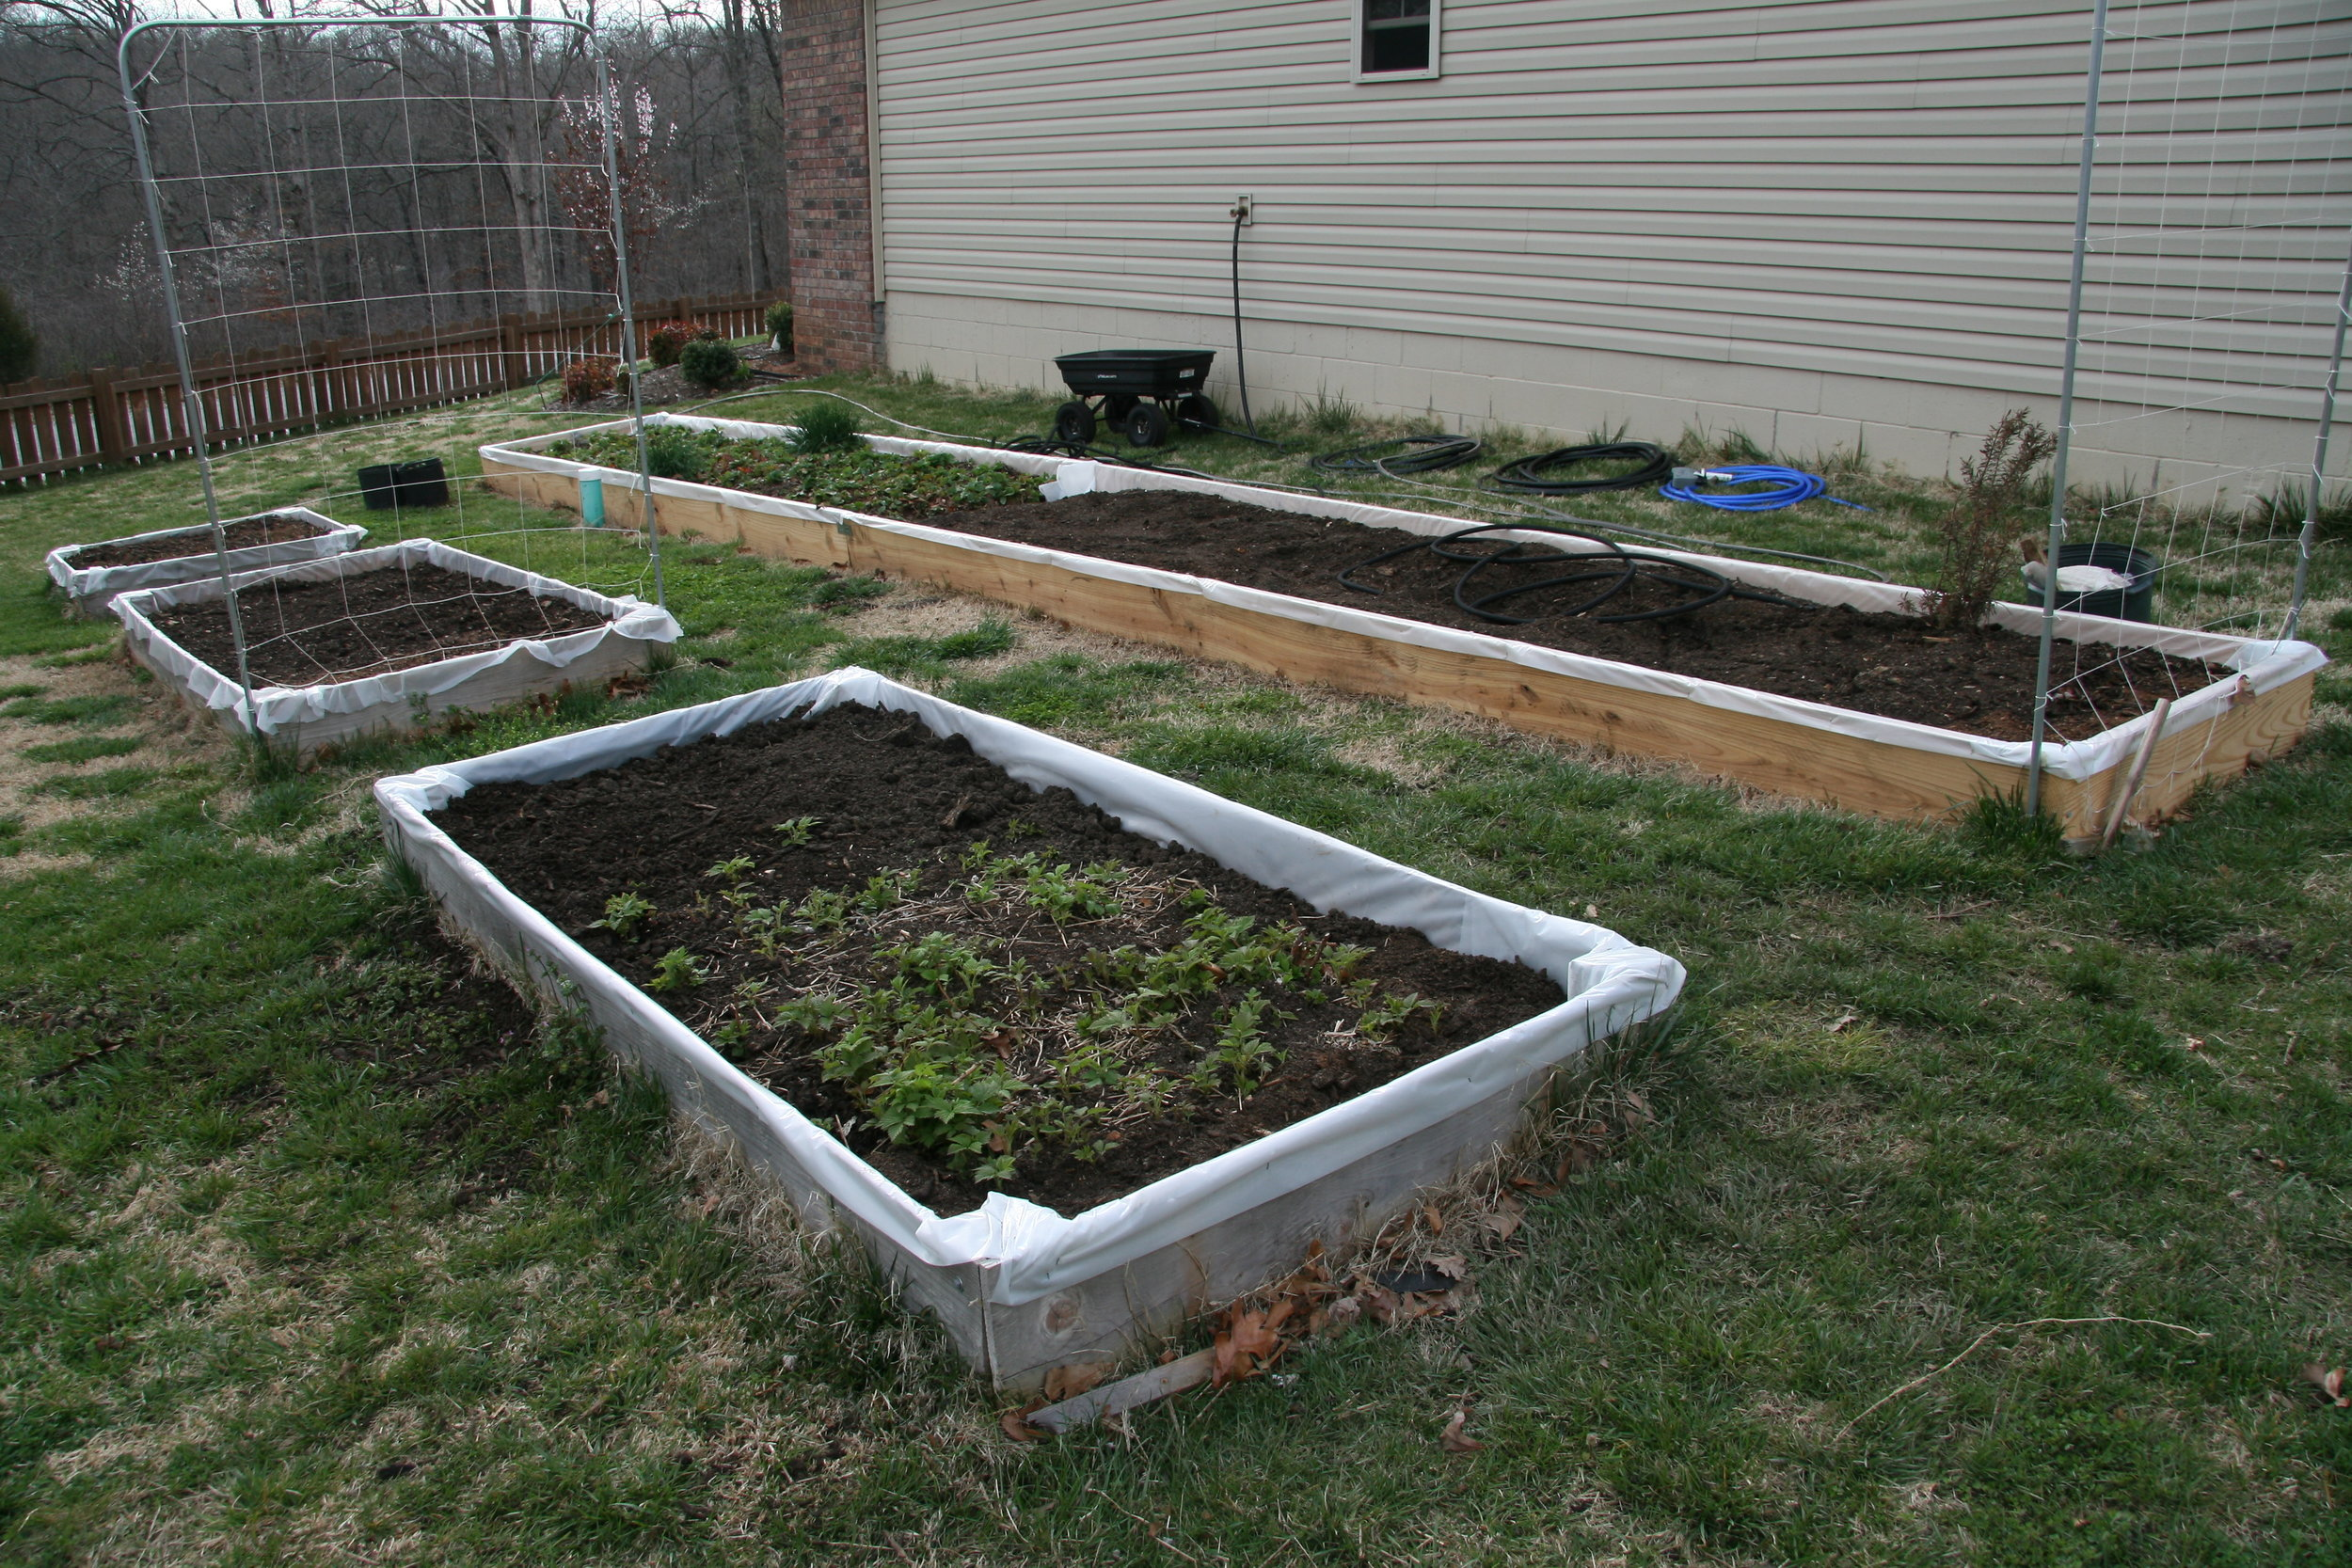 My first Garden, lined with plastic because I didn't want to spend the money on cedar